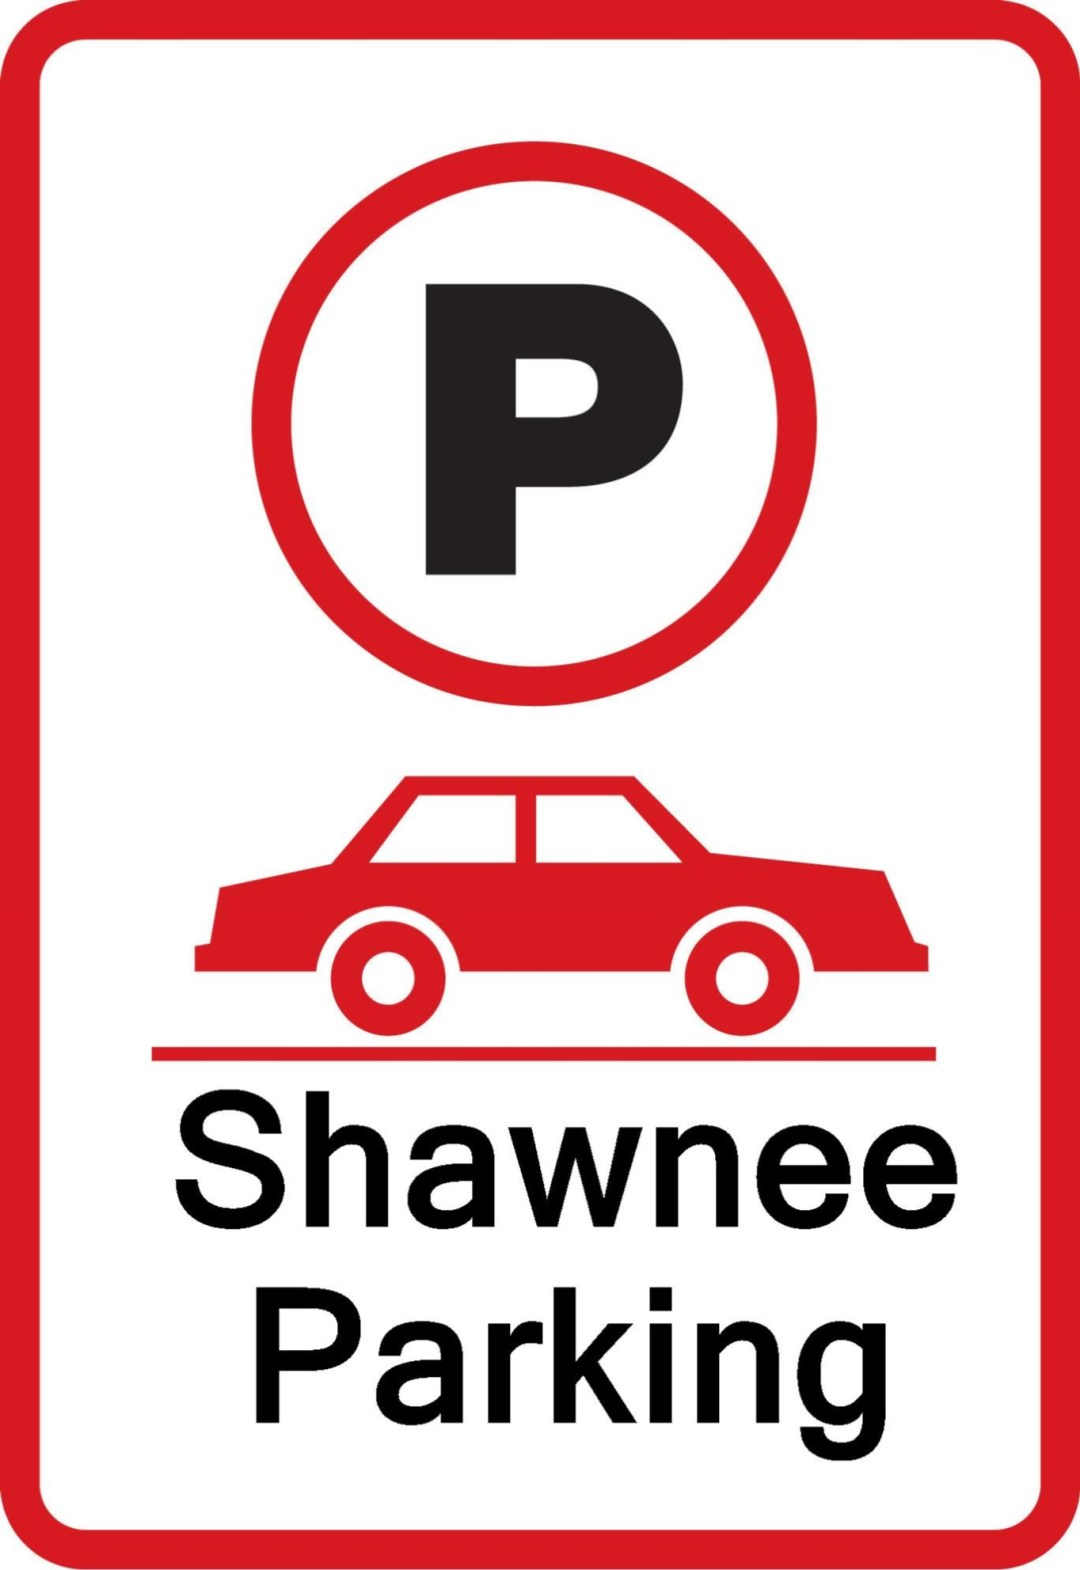 Shawnee Parking - Easter 2017 cropped